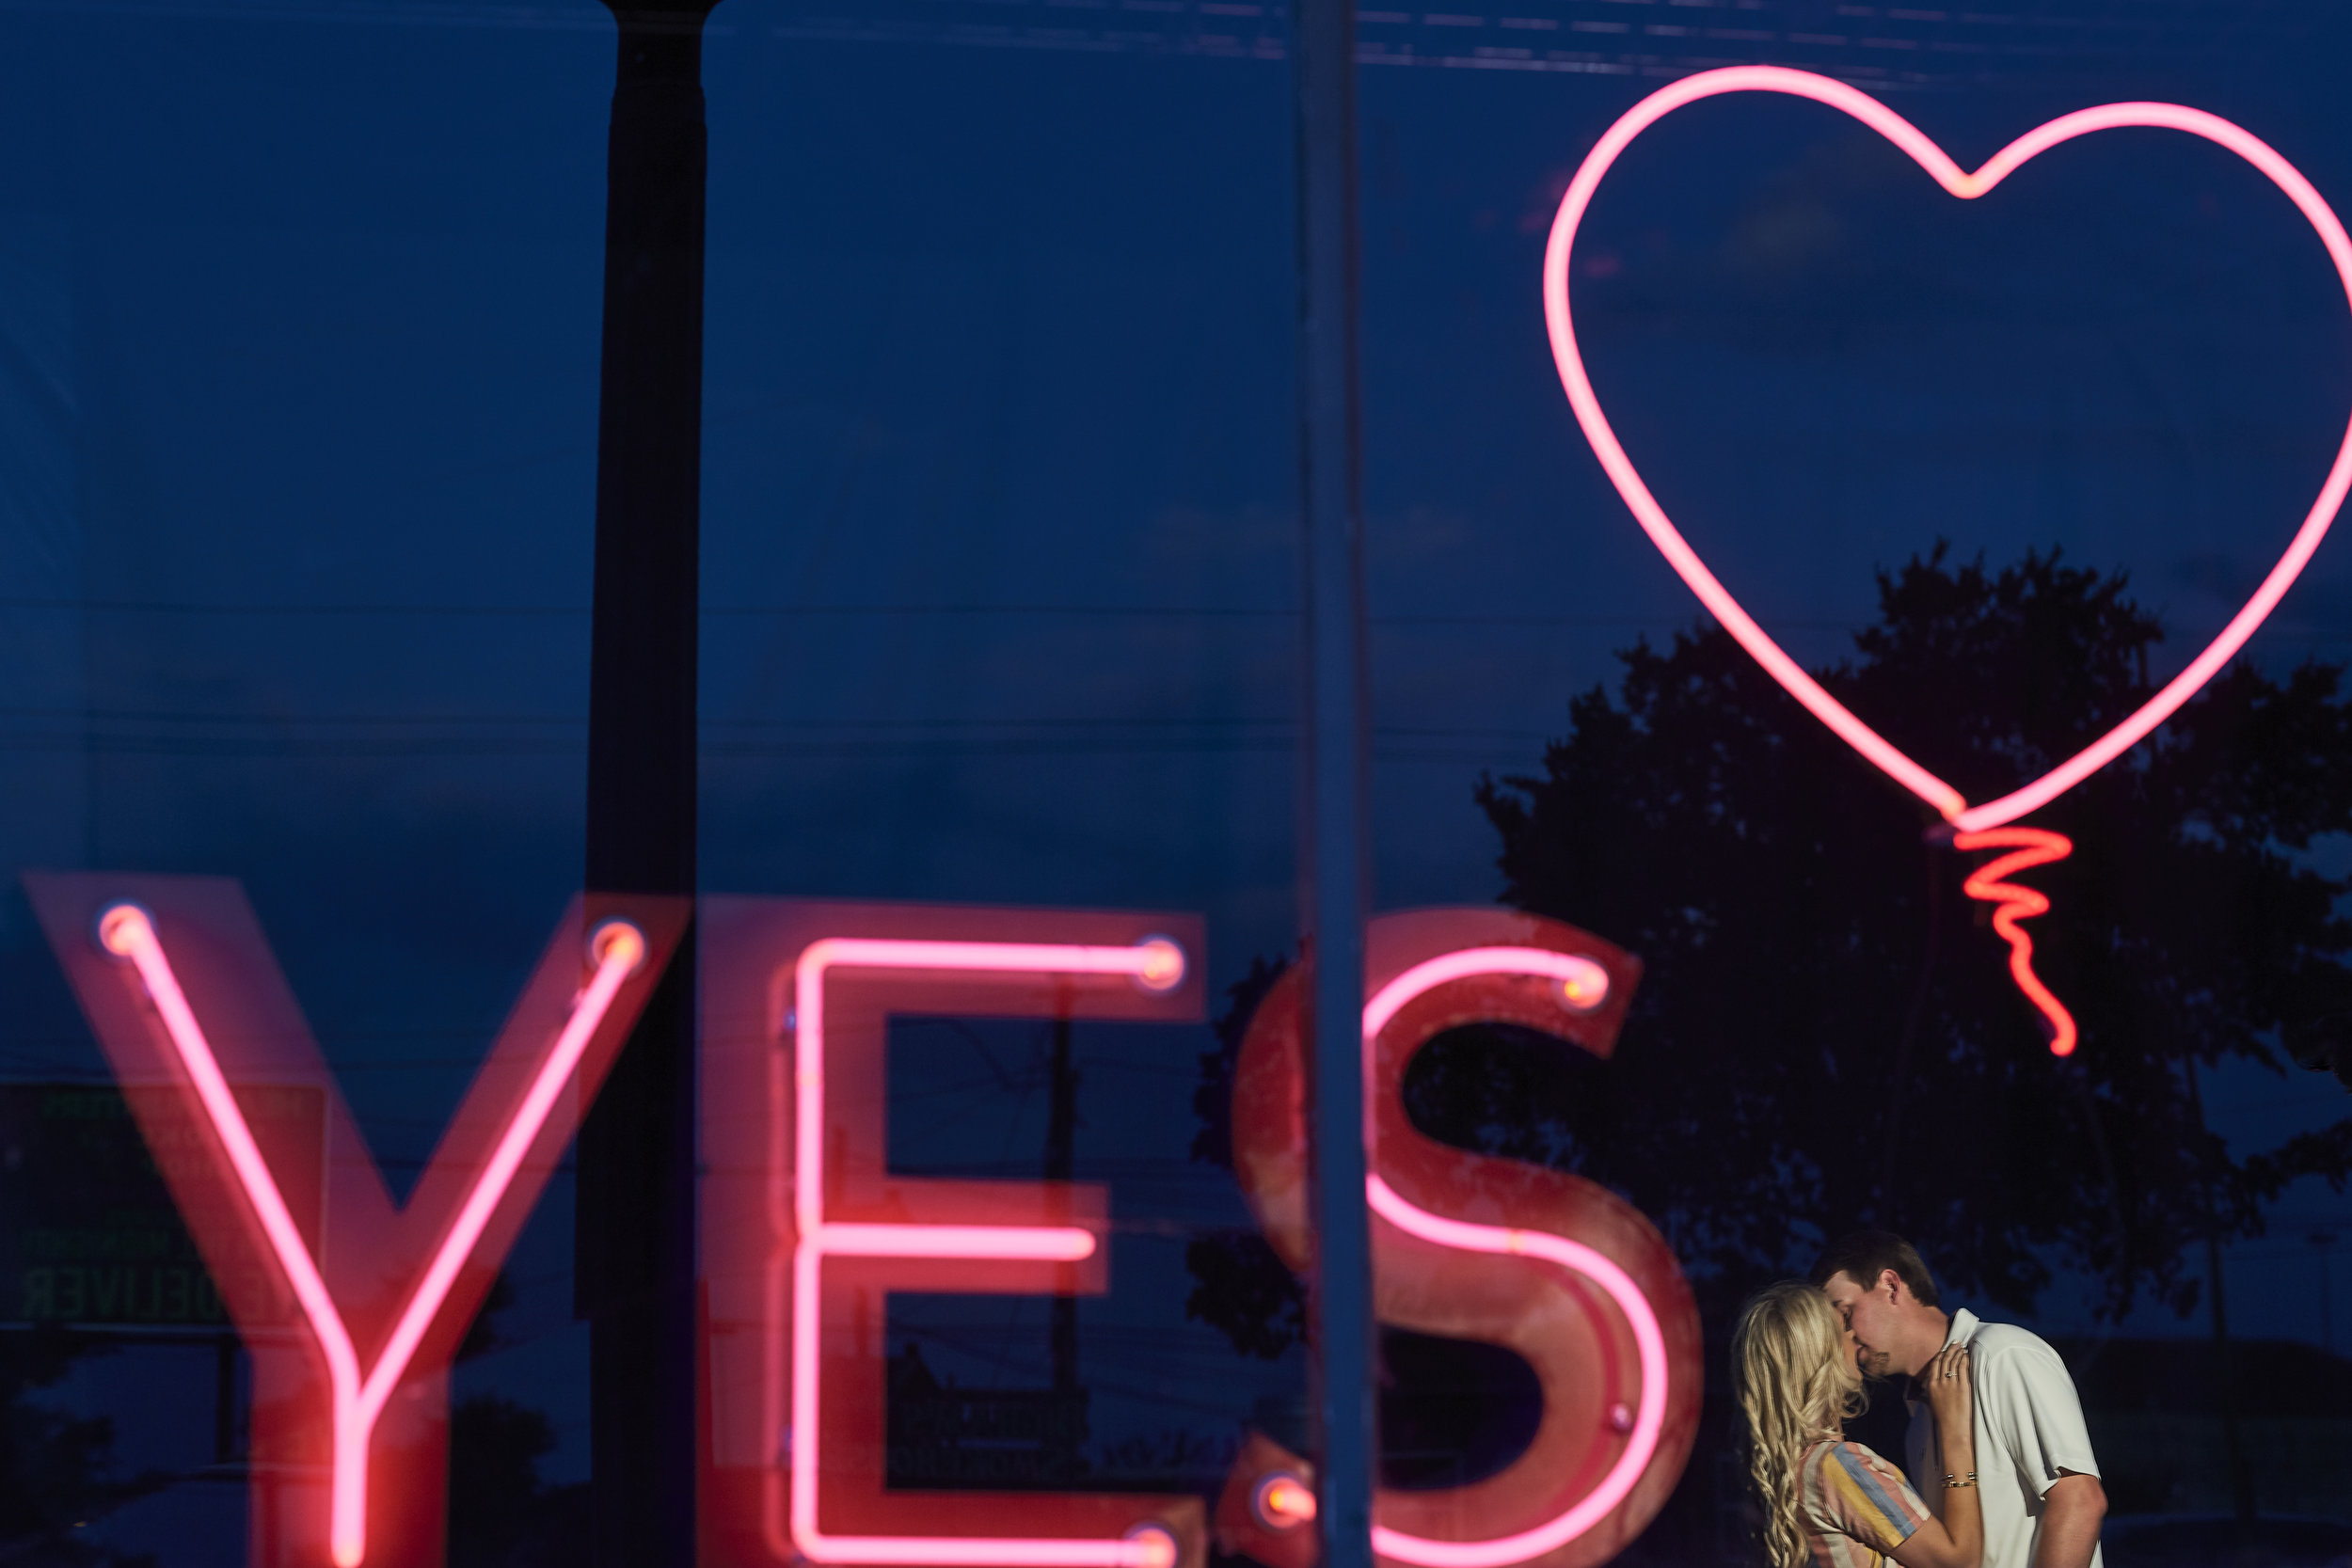 she said yes, heart, neon lights, lubbock wedding photography, reflection, lubbock wedding photographer, creative photography, dramatic photography